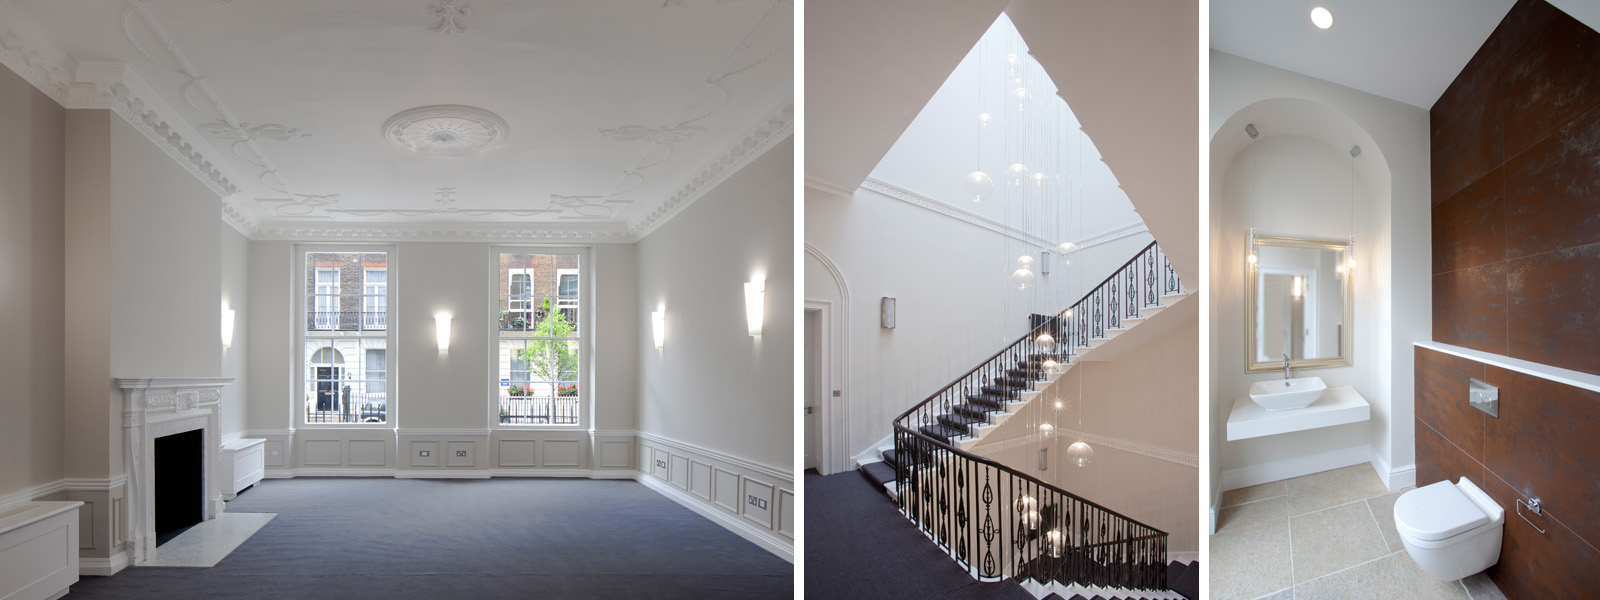 feilden mawson  architecture design  projects  52 gloucester place